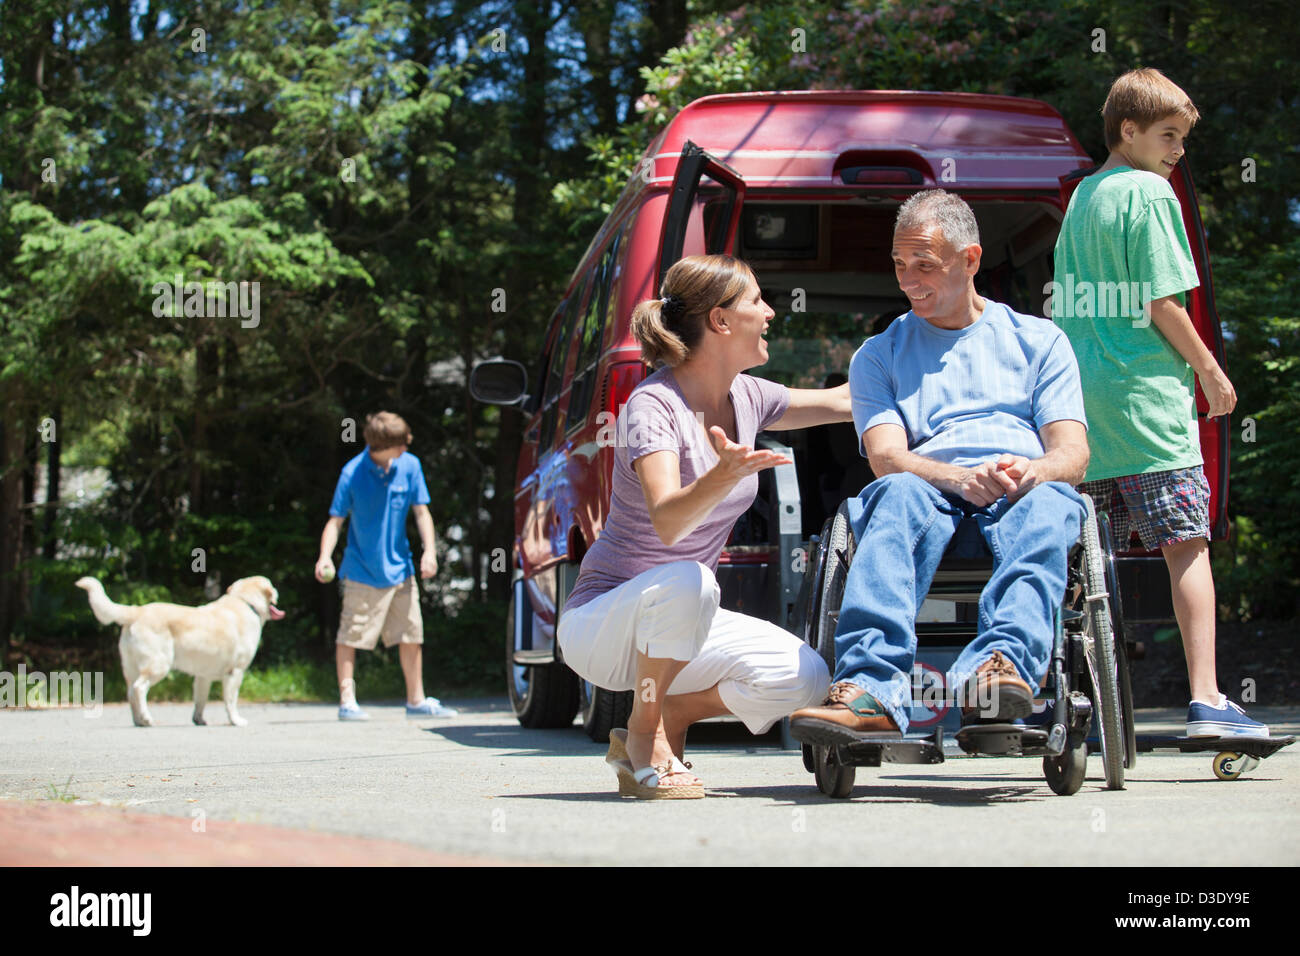 Man with spinal cord injury in wheelchair enjoying with his family - Stock Image